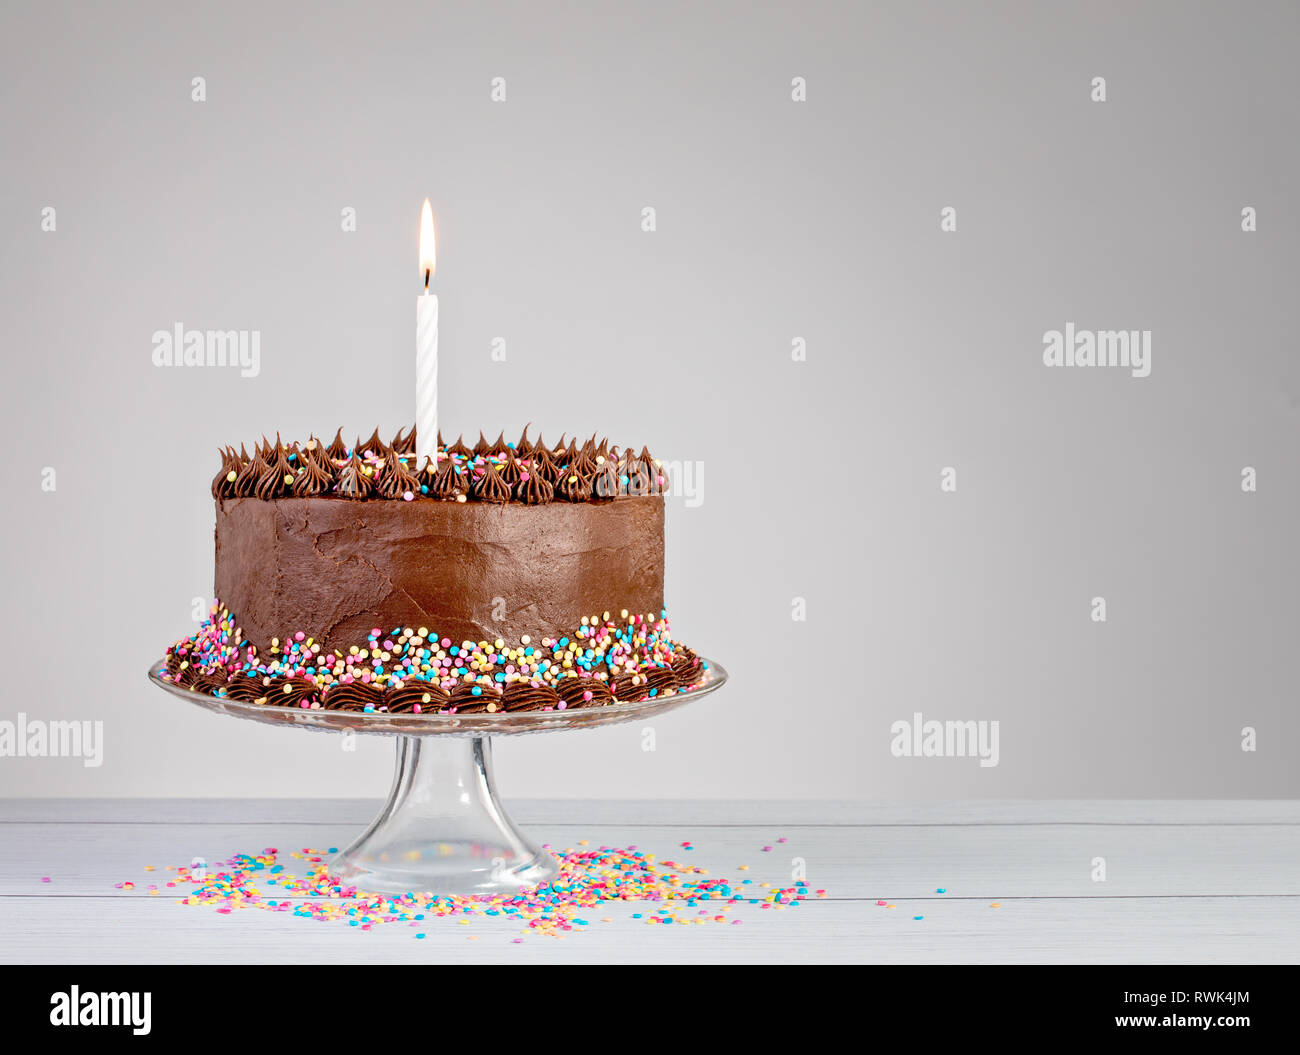 Chocolate Birthday Cake With Colorful Sprinkles And Candle Over White Background